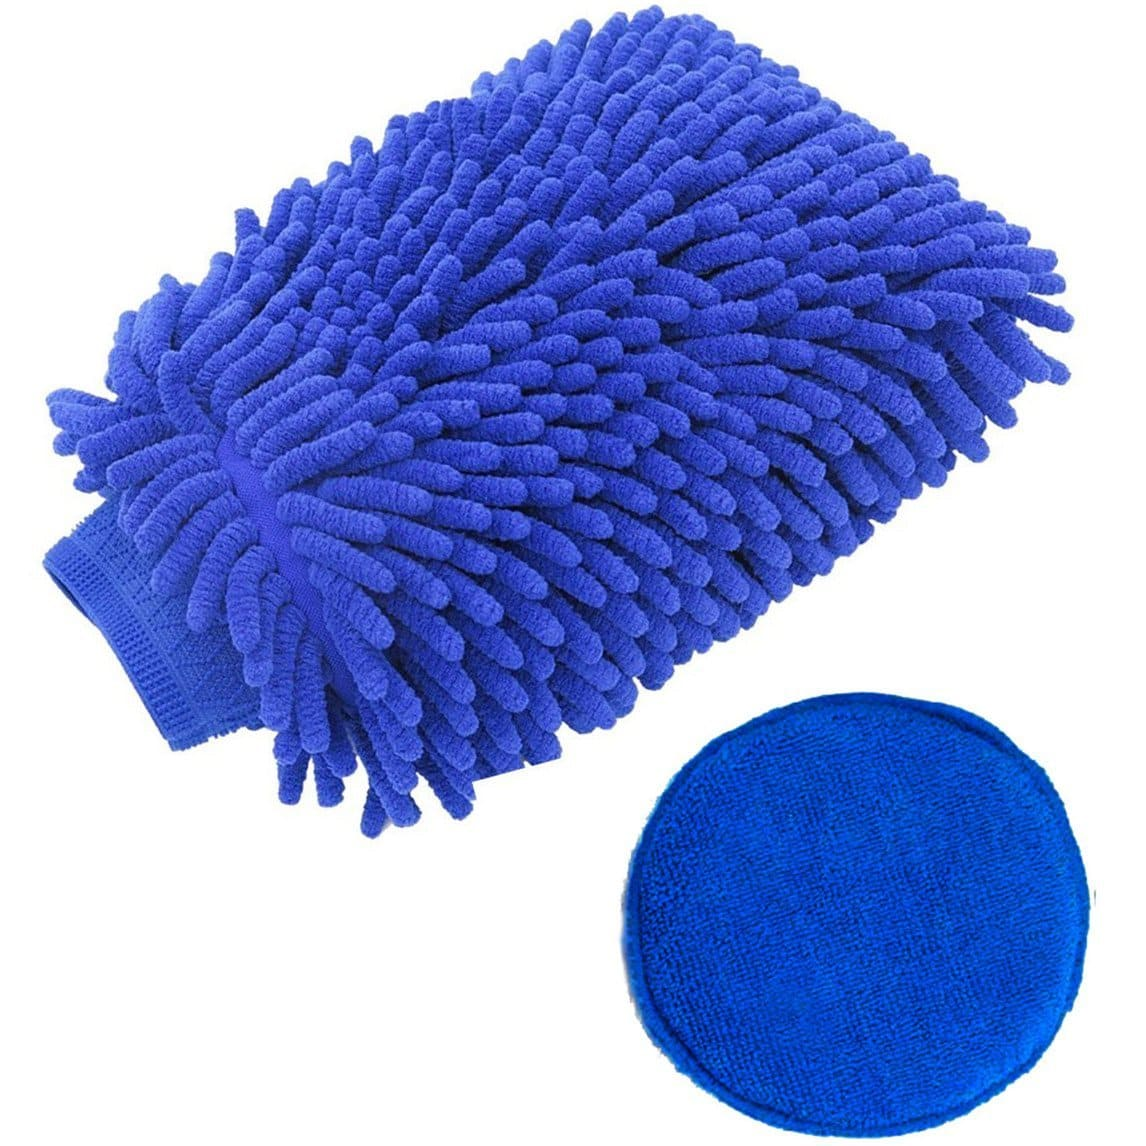 Car Wash Mitt Extra Large Car Wash Mitt and Wax Application Kit (Blue) for $5.99 @ Amazon + FS